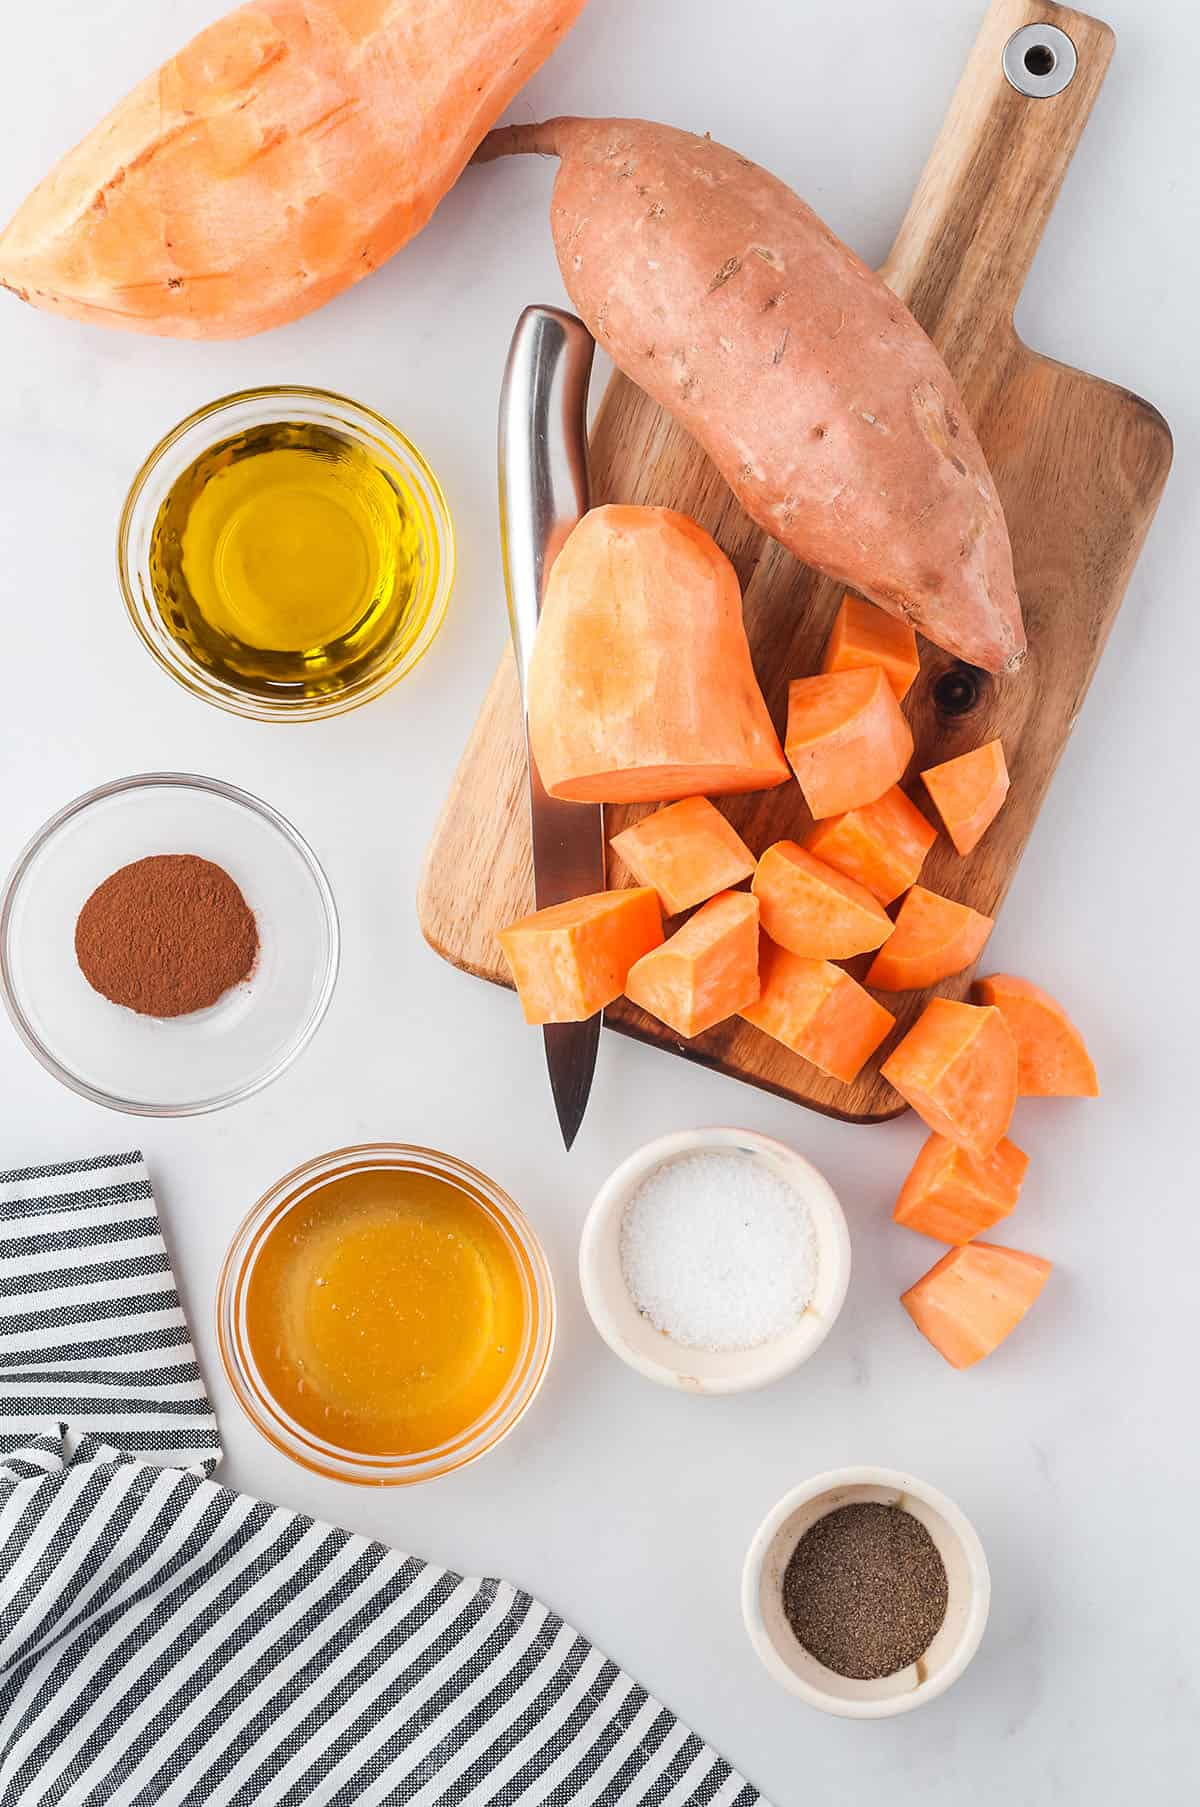 ingredients for roasted sweet potato cubes on board.